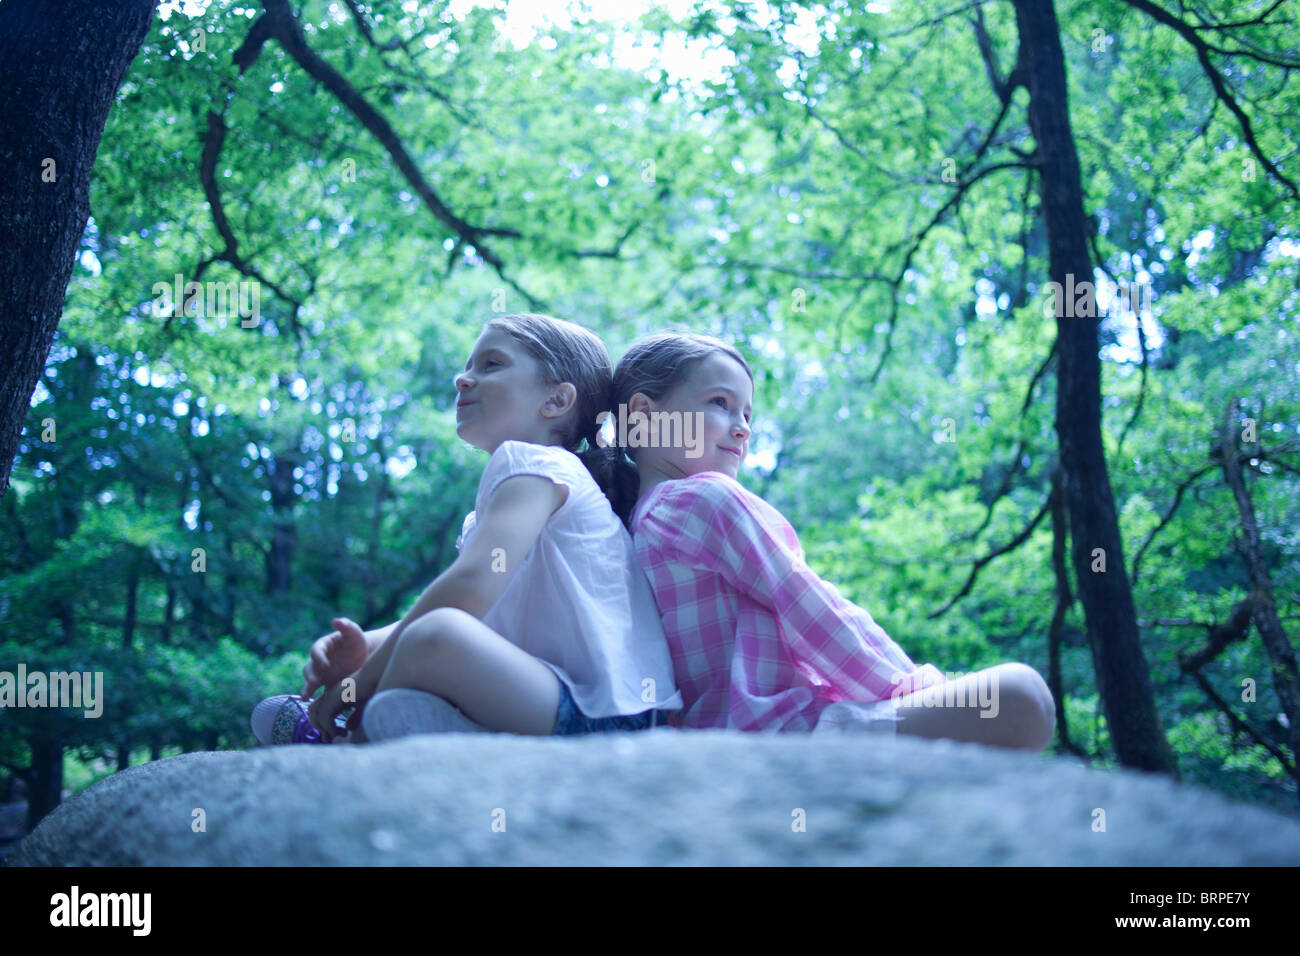 2 girls sitting on a big roc in forest - Stock Image